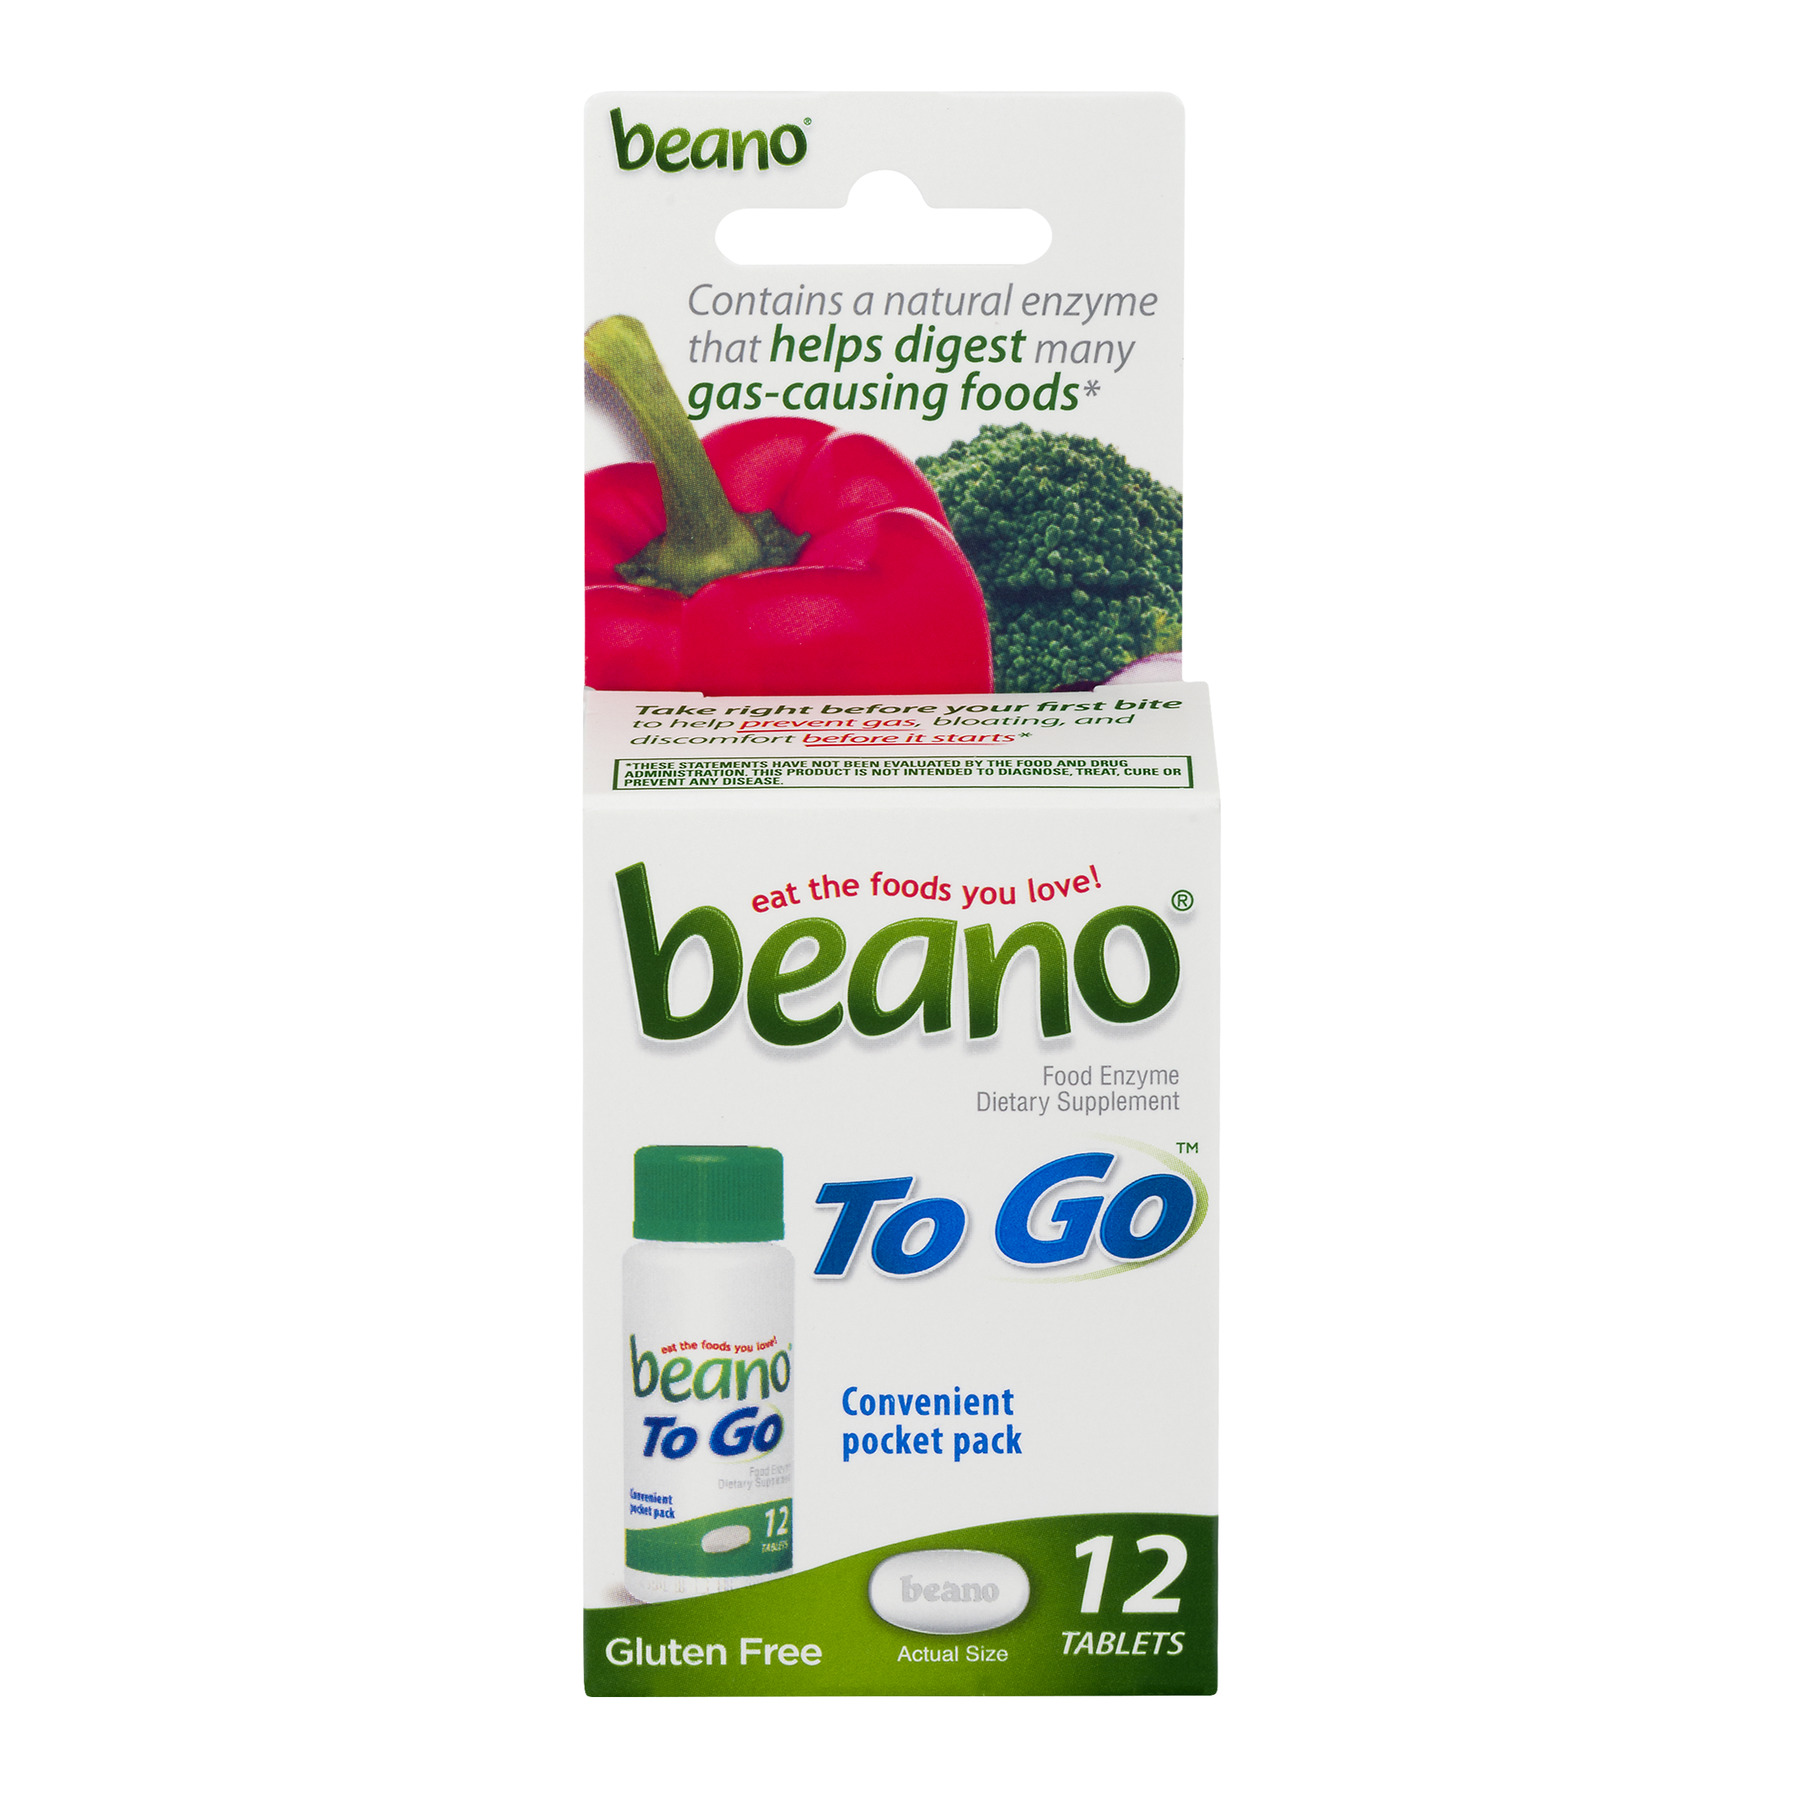 Beano To Go Food Enzyme Dietary Supplement Tablets, 12 count